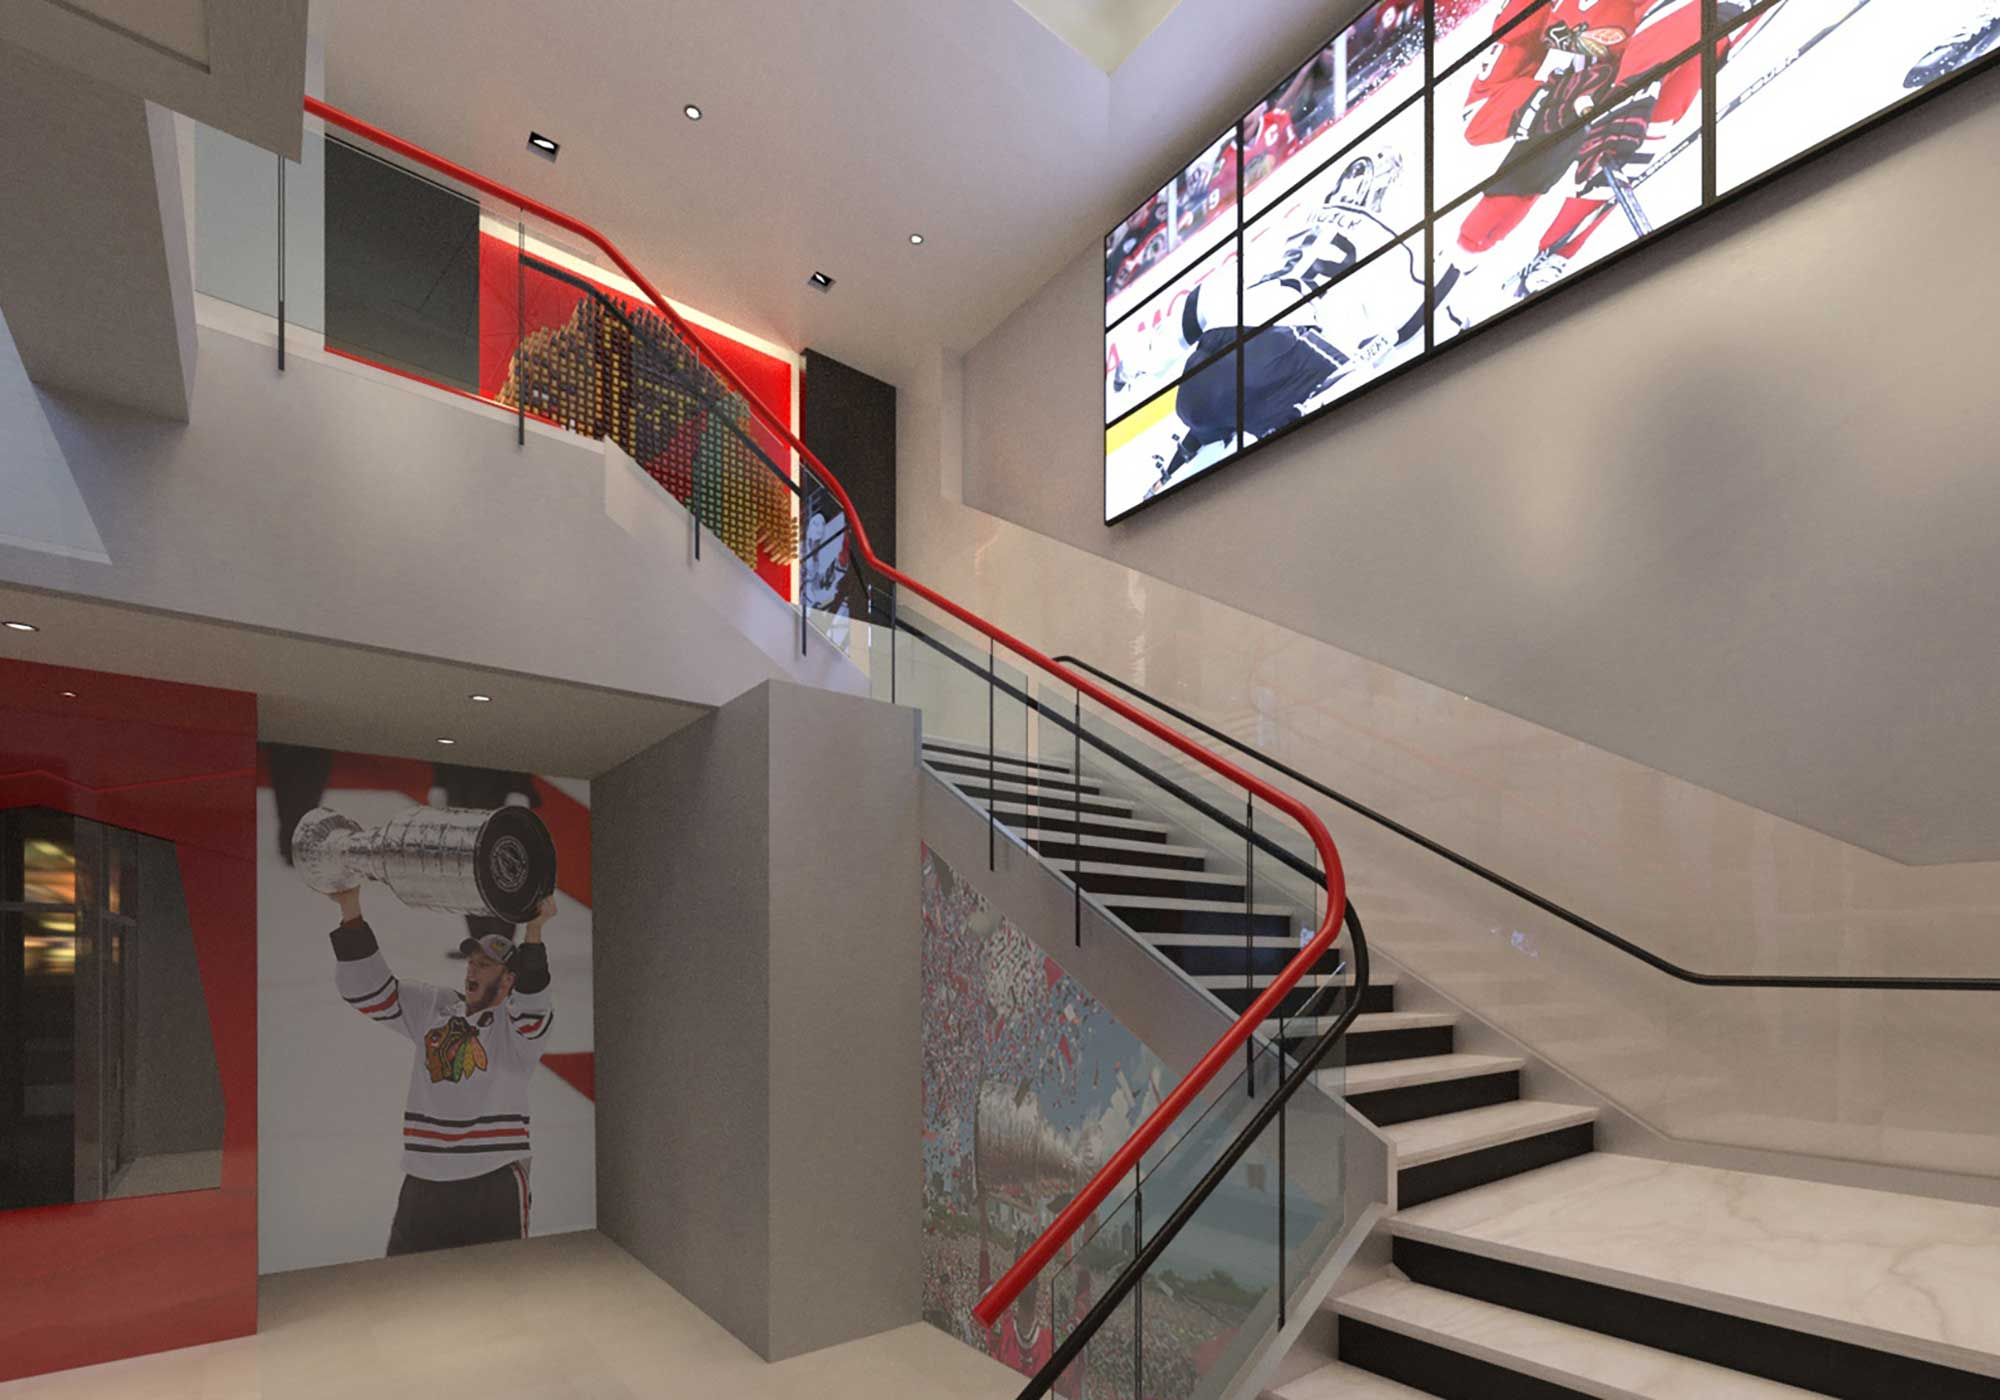 Rendering of staircase with video monitors posted overhead